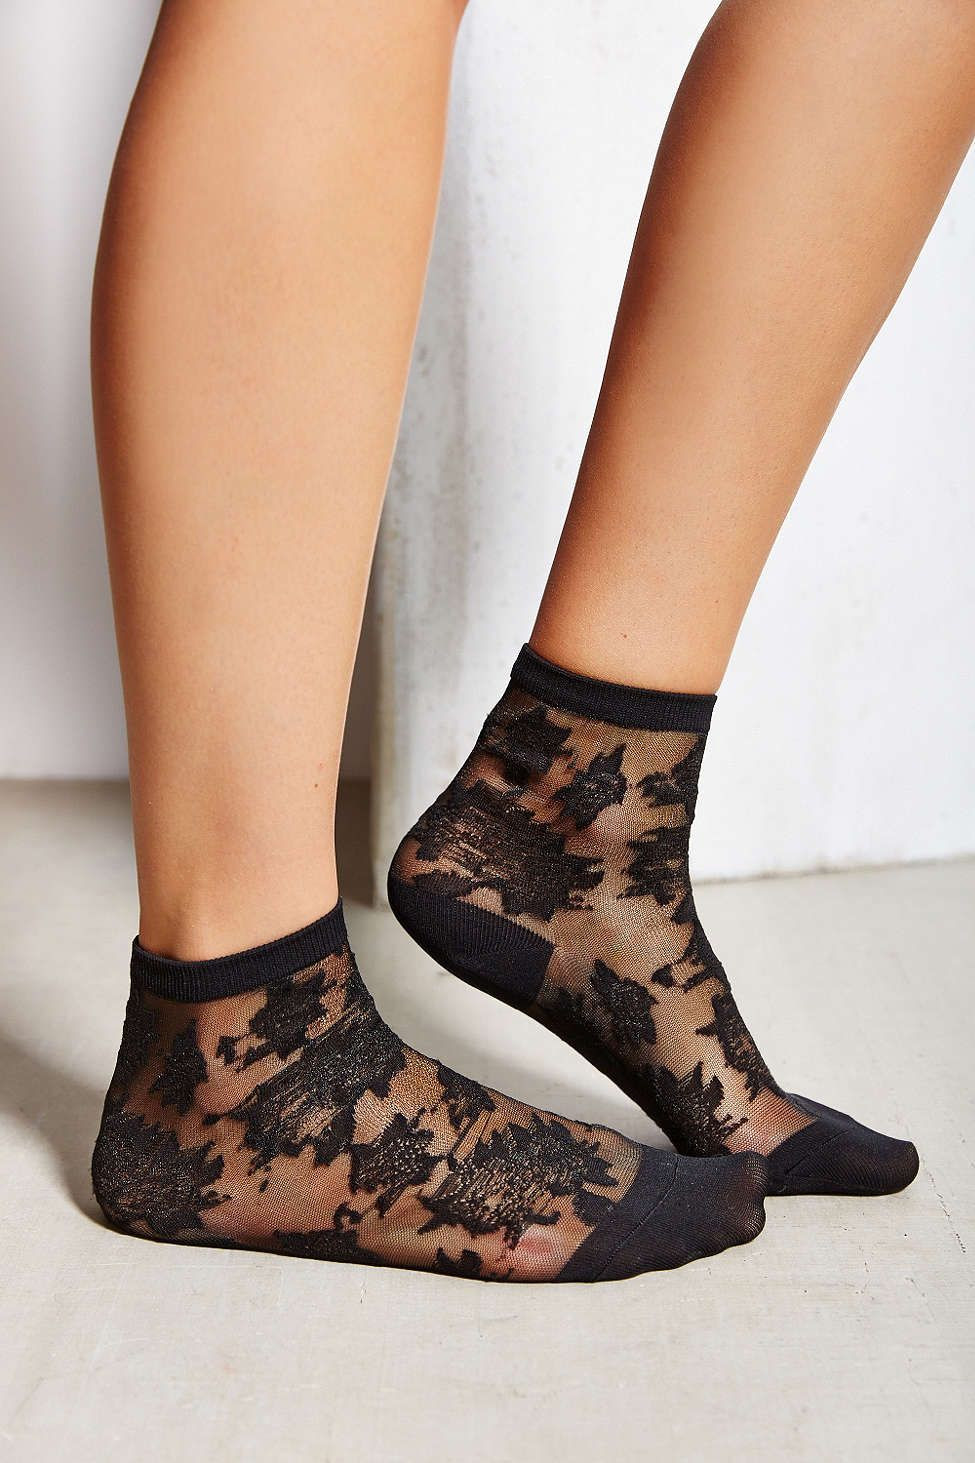 Patterned socks Awesome Patterned Sheer Ankle sock Urban Outfitters Of Superb 48 Images Patterned socks